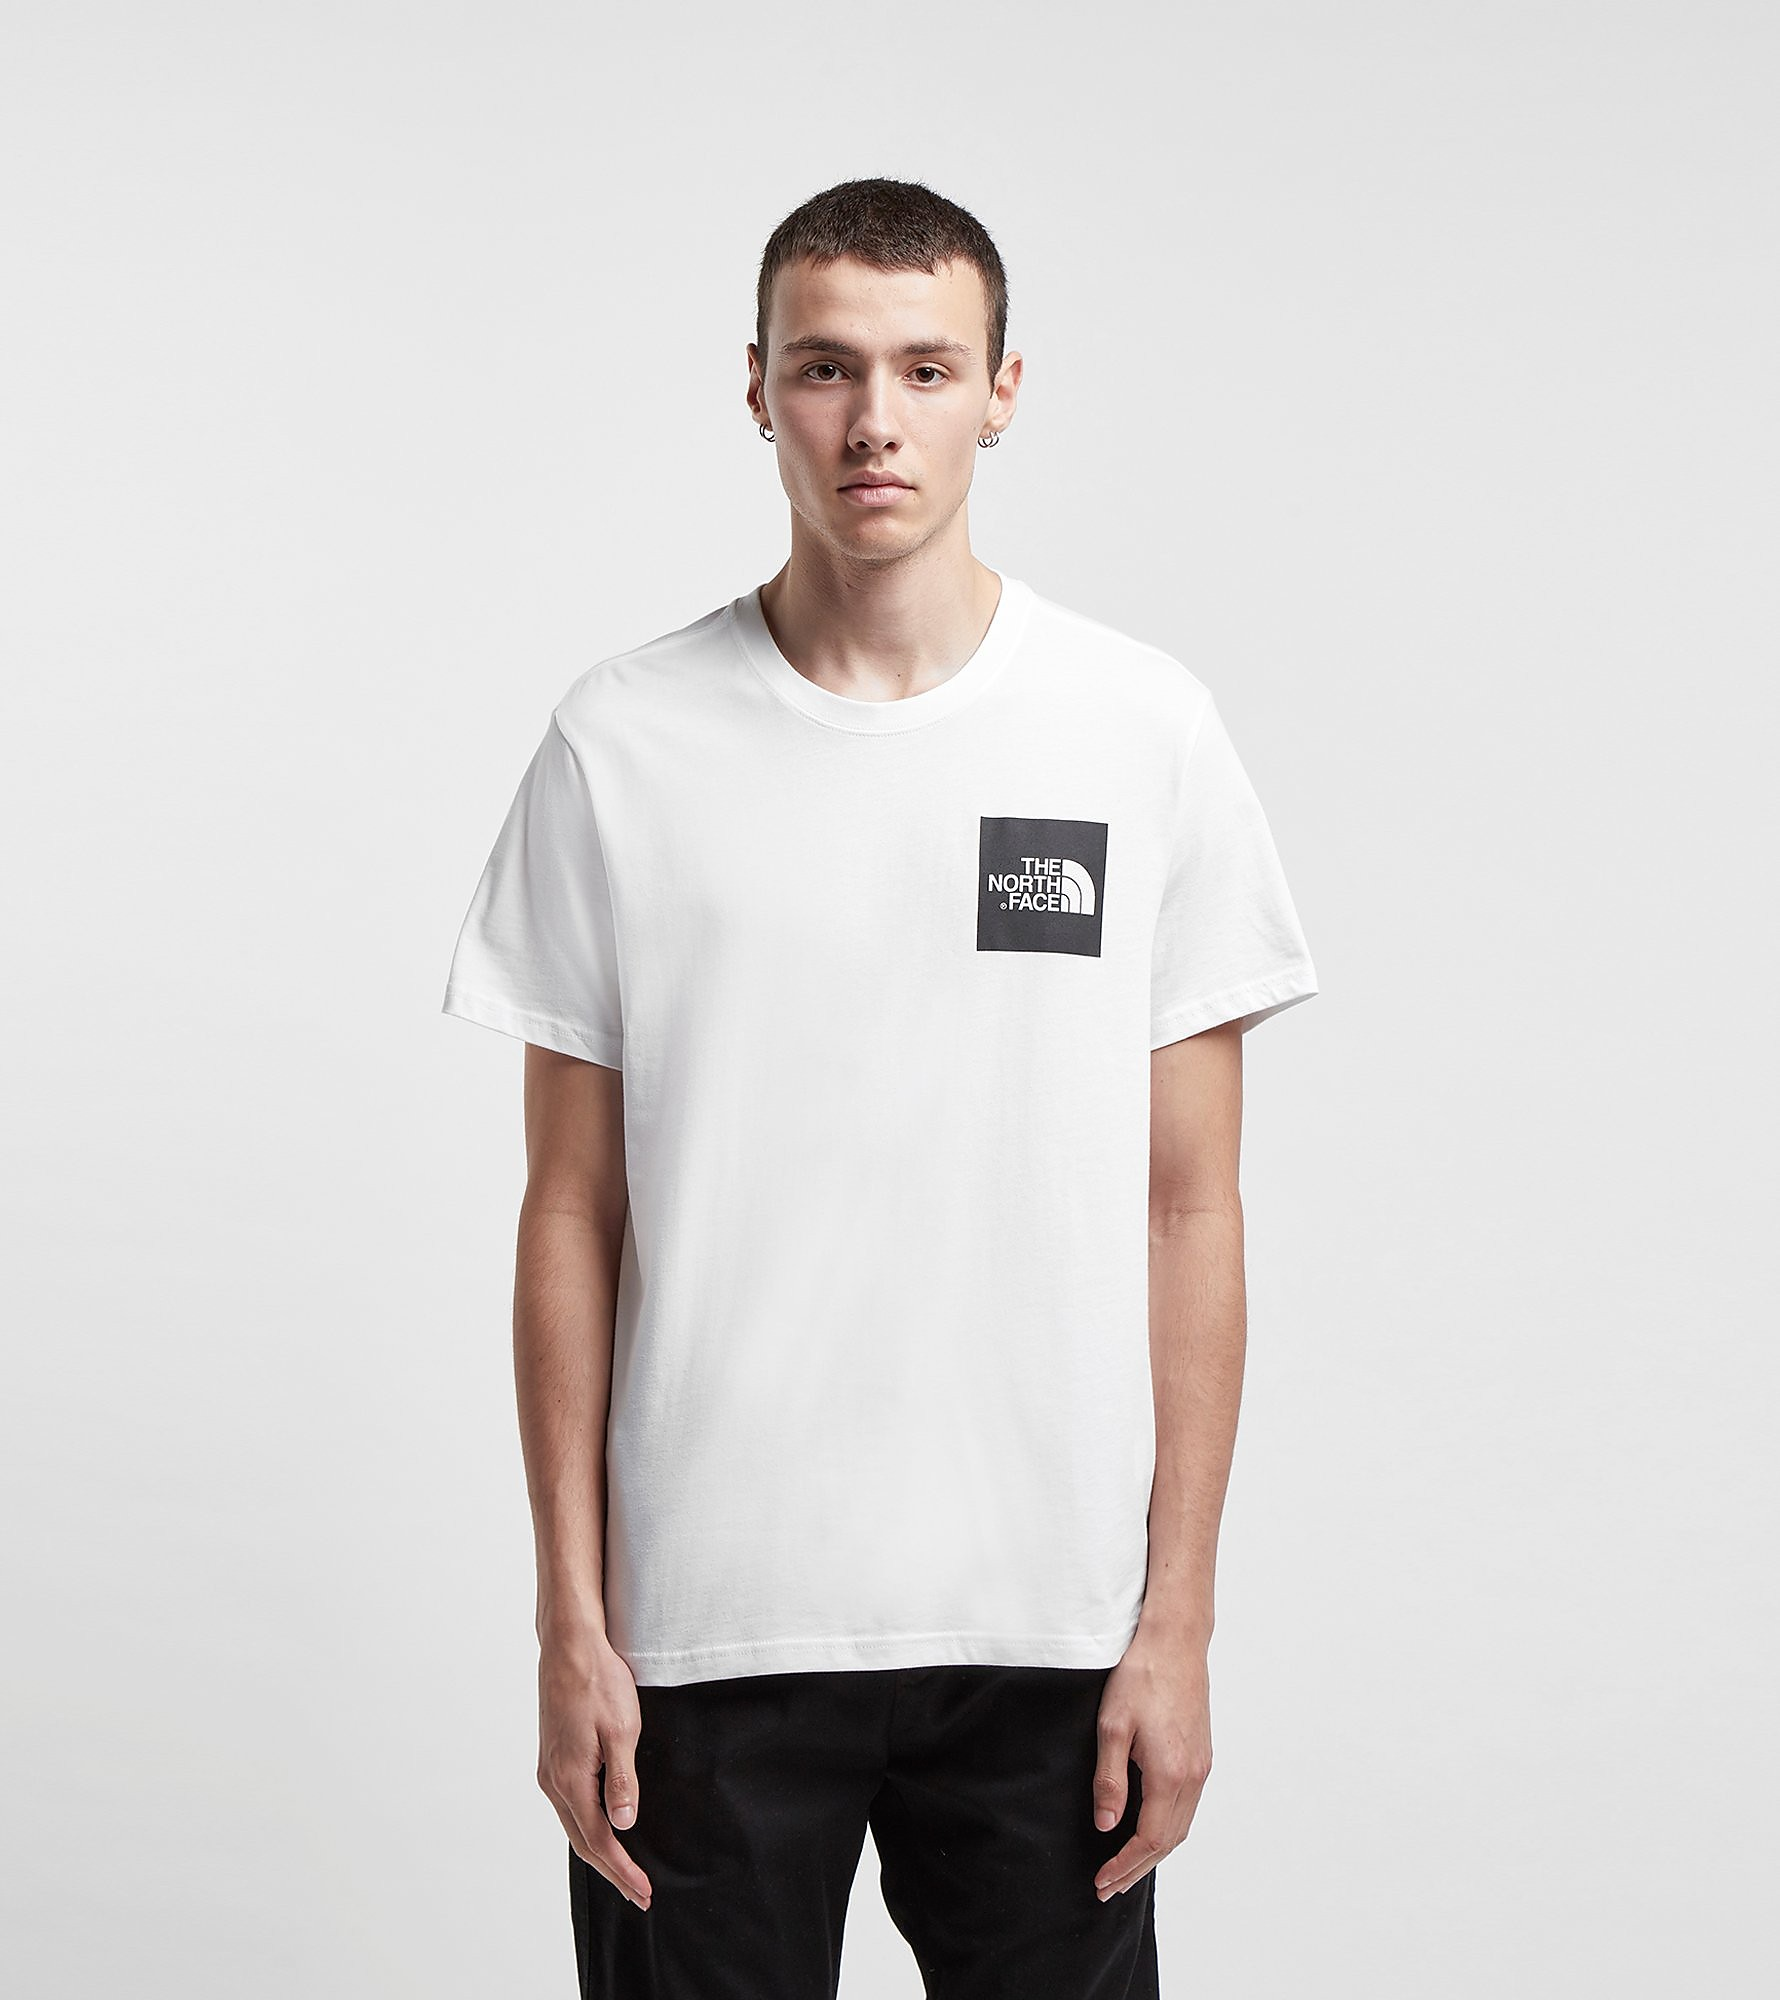 The North Face Fine Box White